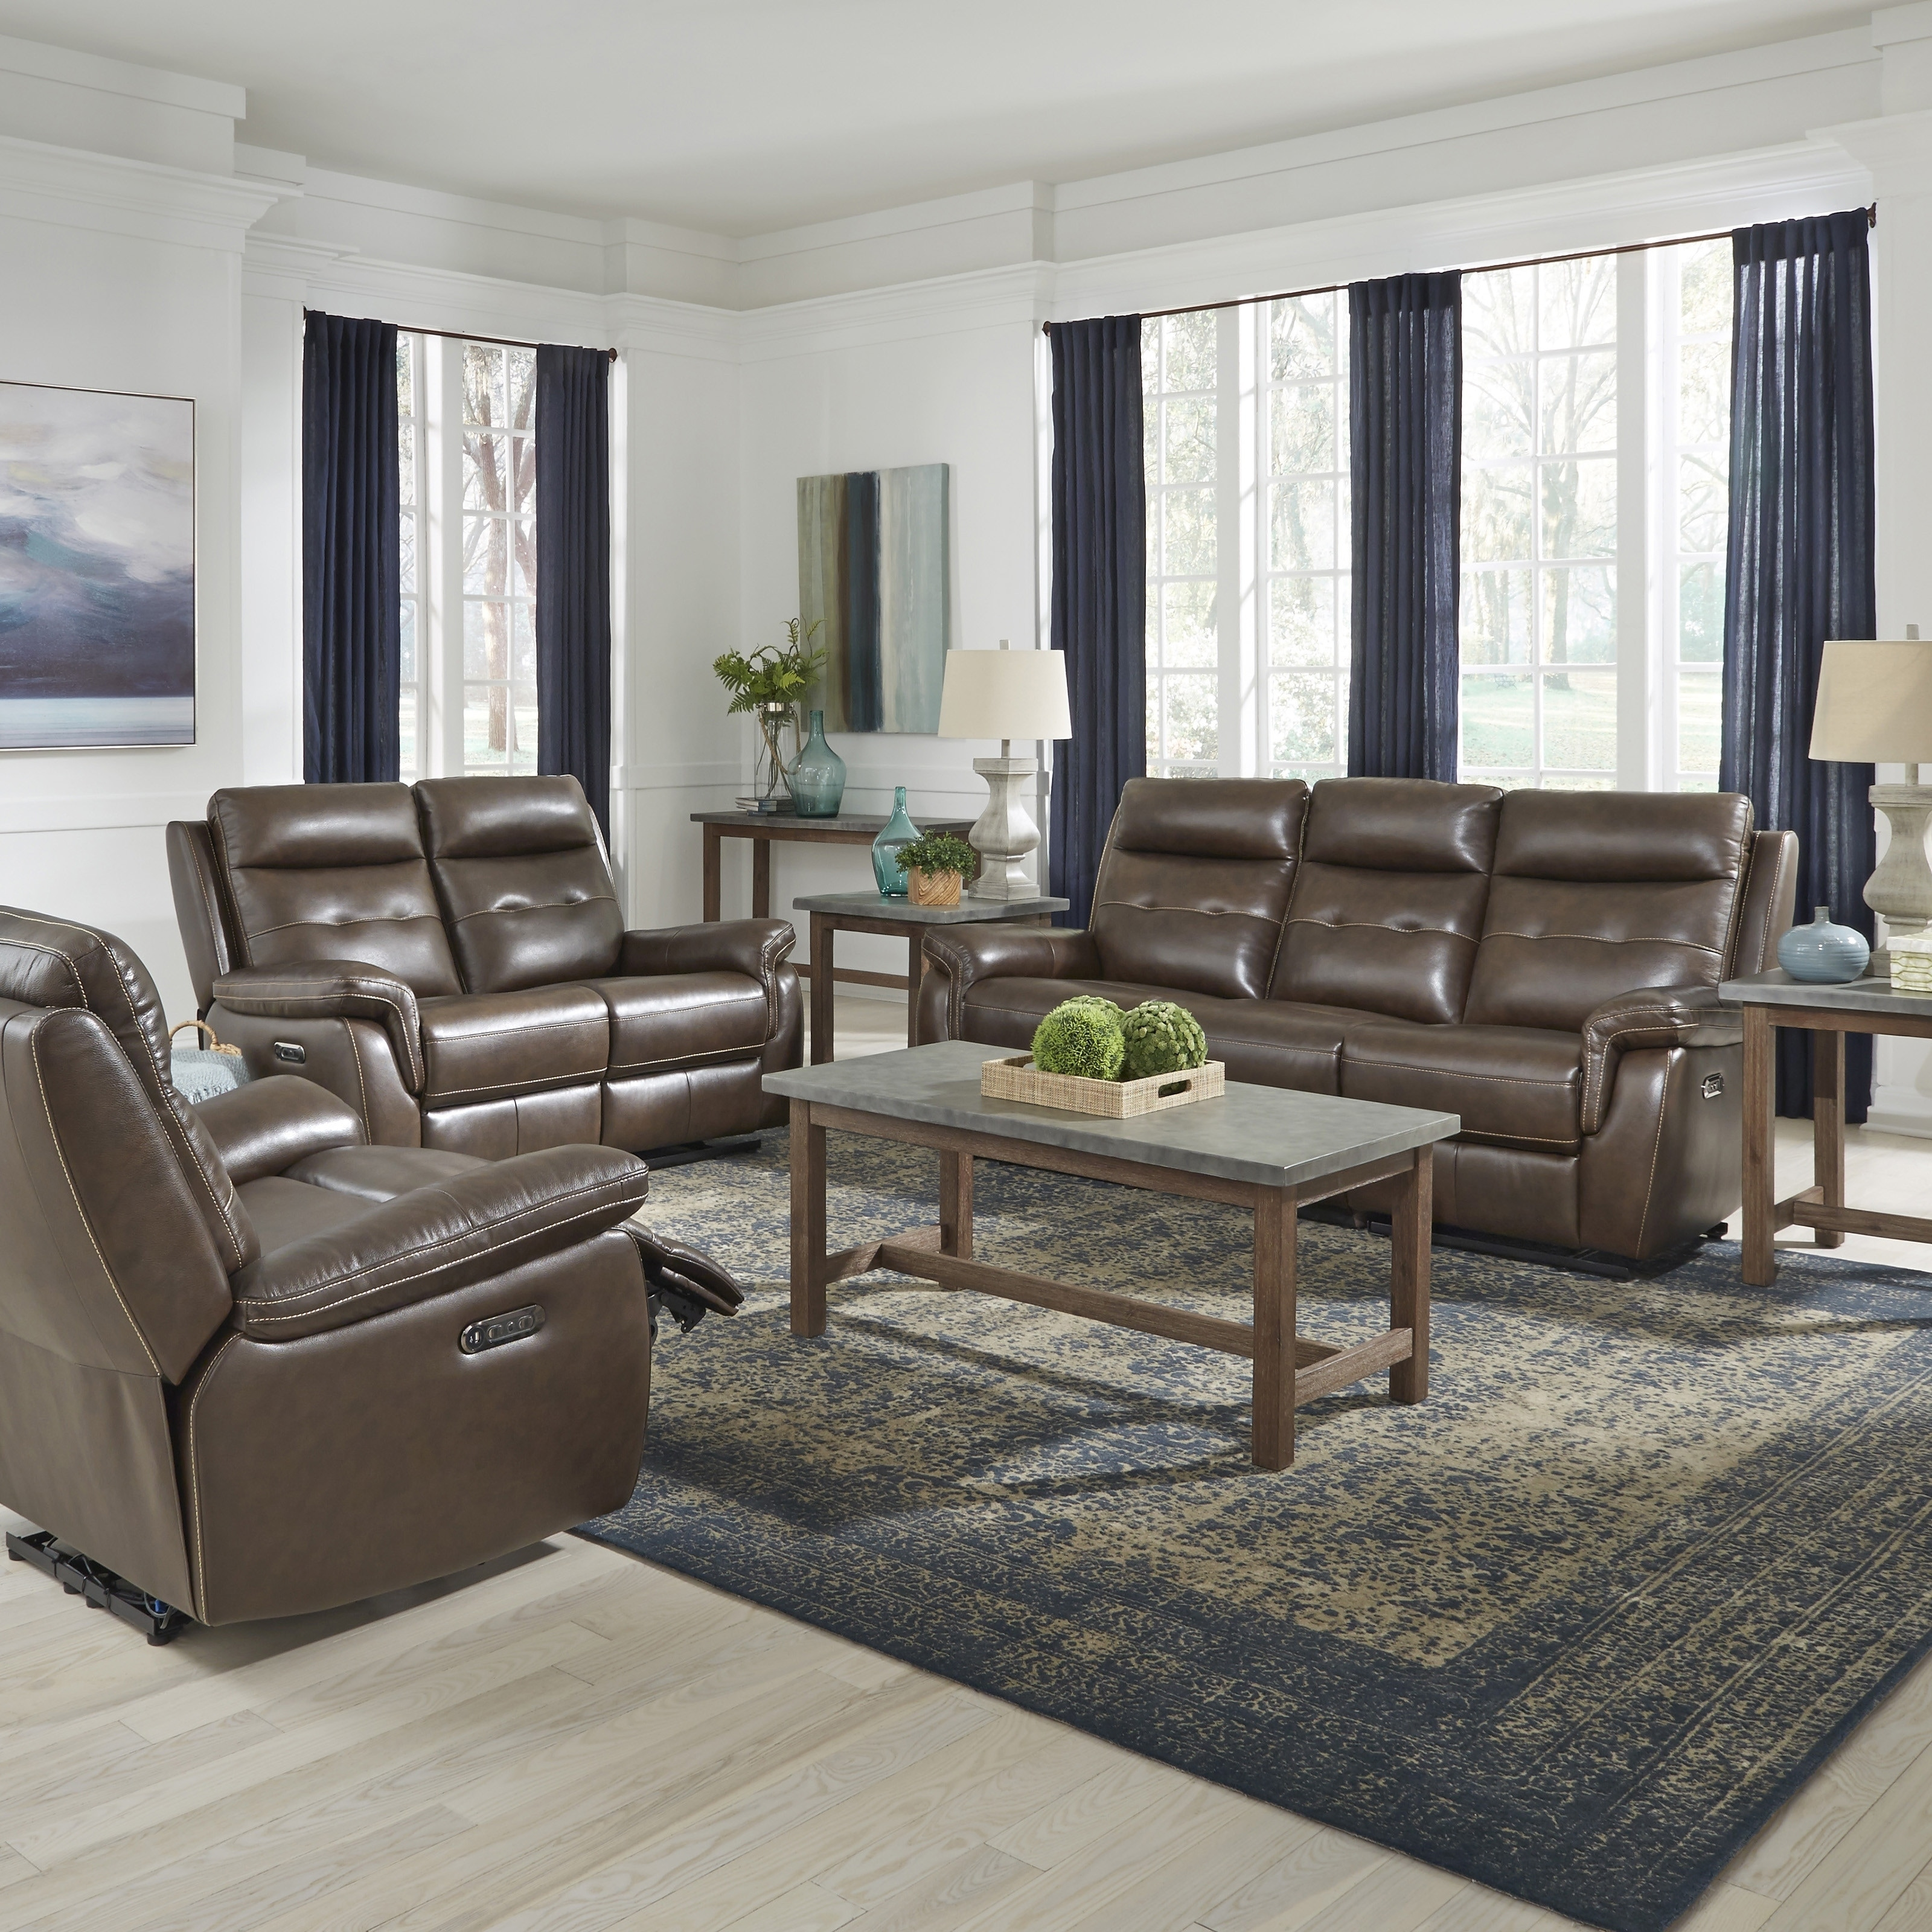 Astounding Home Styles By Flexsteel Lux Leather Power Motion 3 Pc Reclining Sofa Console Love Seat Recliner Ibusinesslaw Wood Chair Design Ideas Ibusinesslaworg